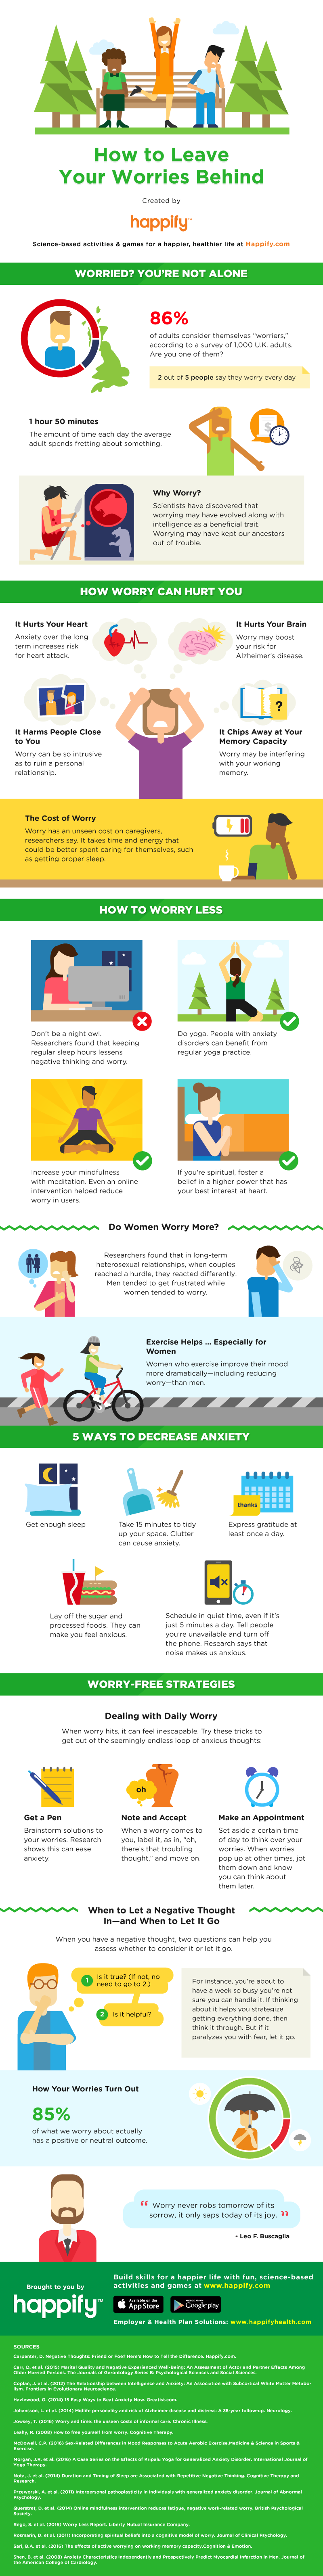 How To Leave Your Worries Behind - #infographic